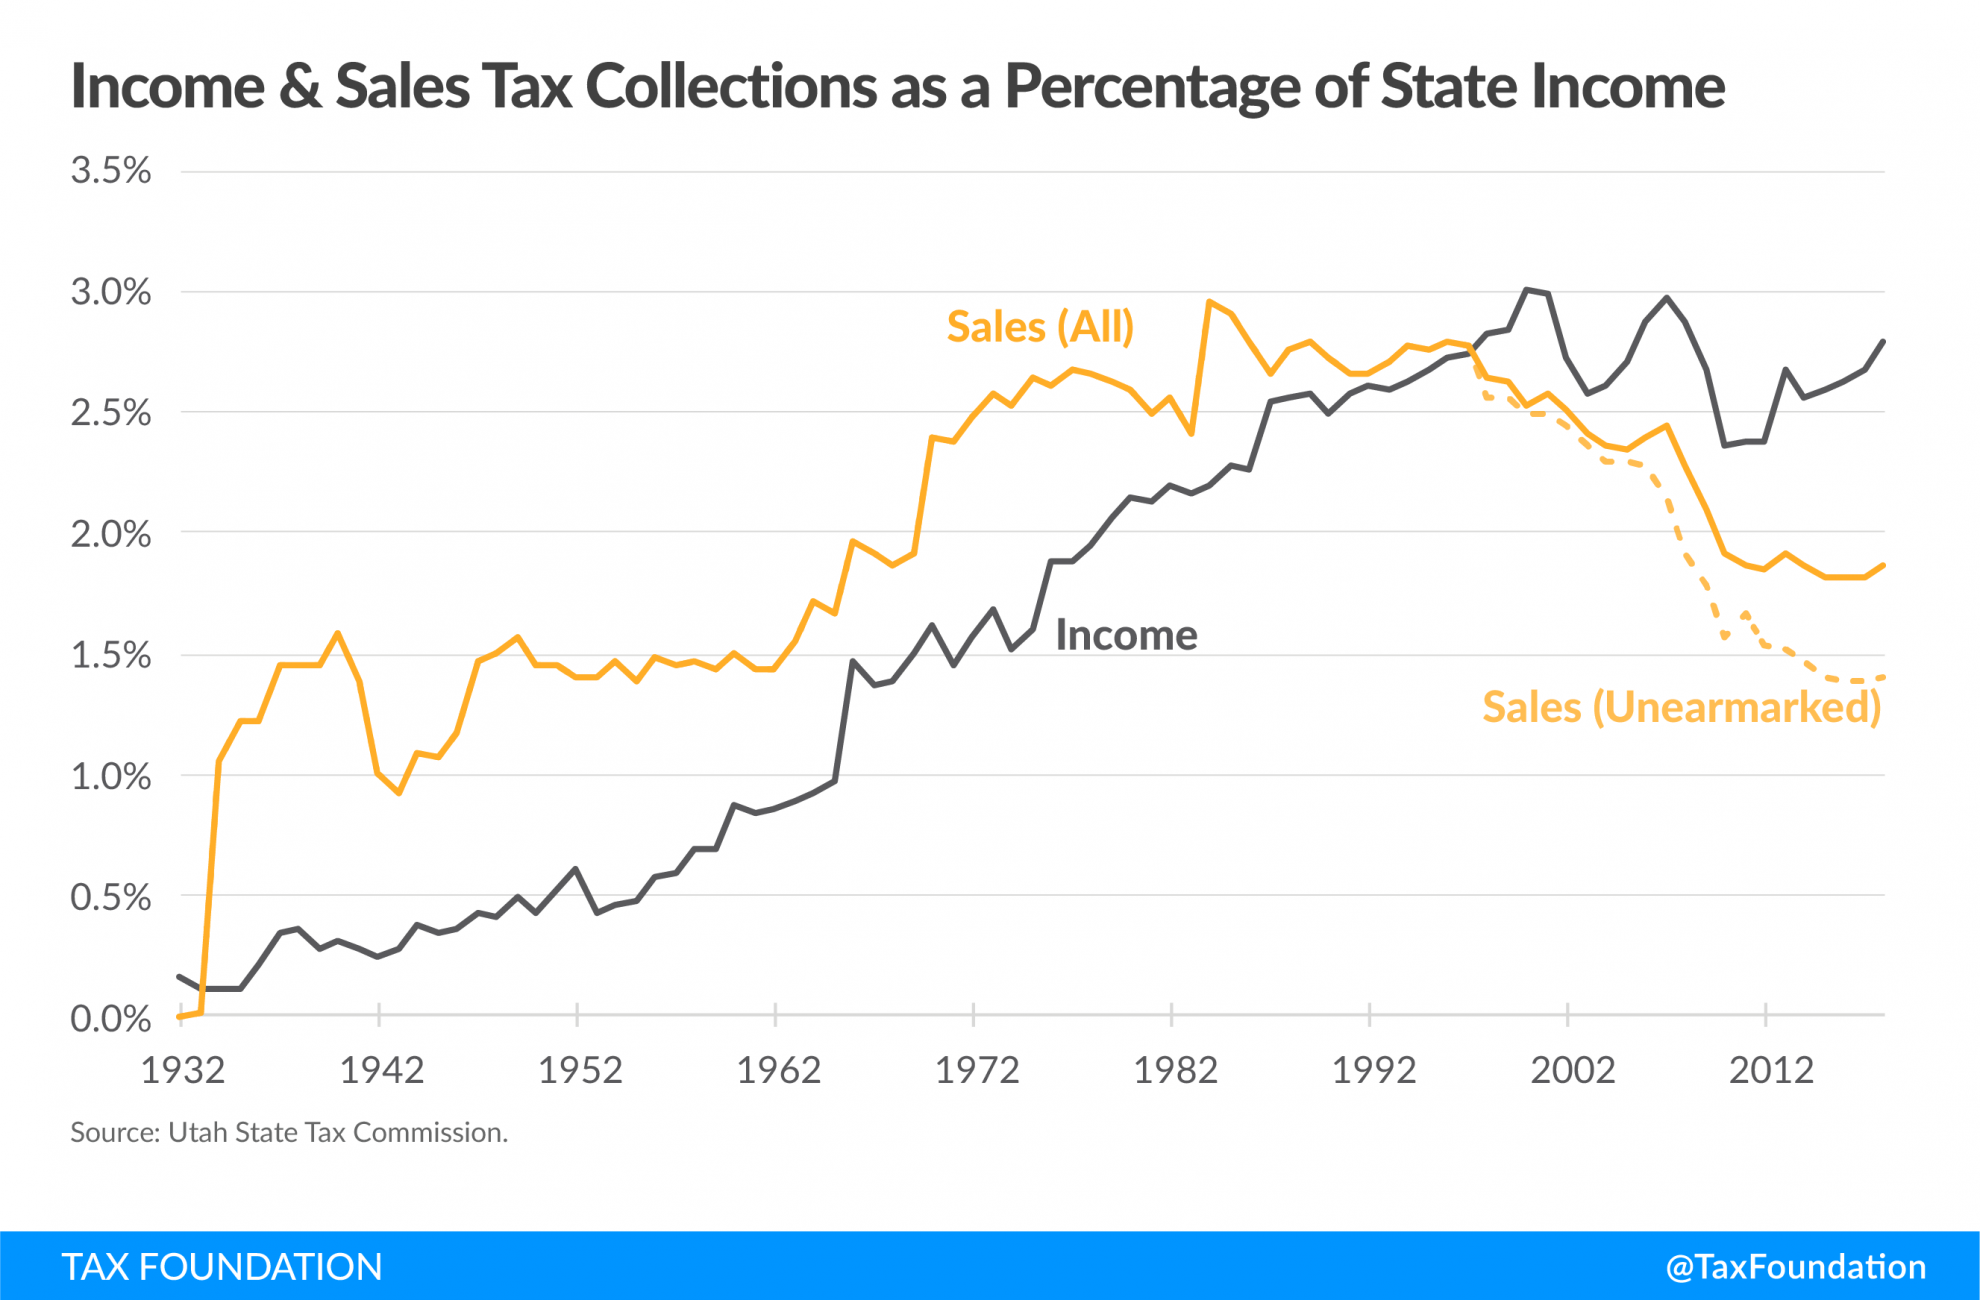 Utah income and sales tax collections as a percentage of state income